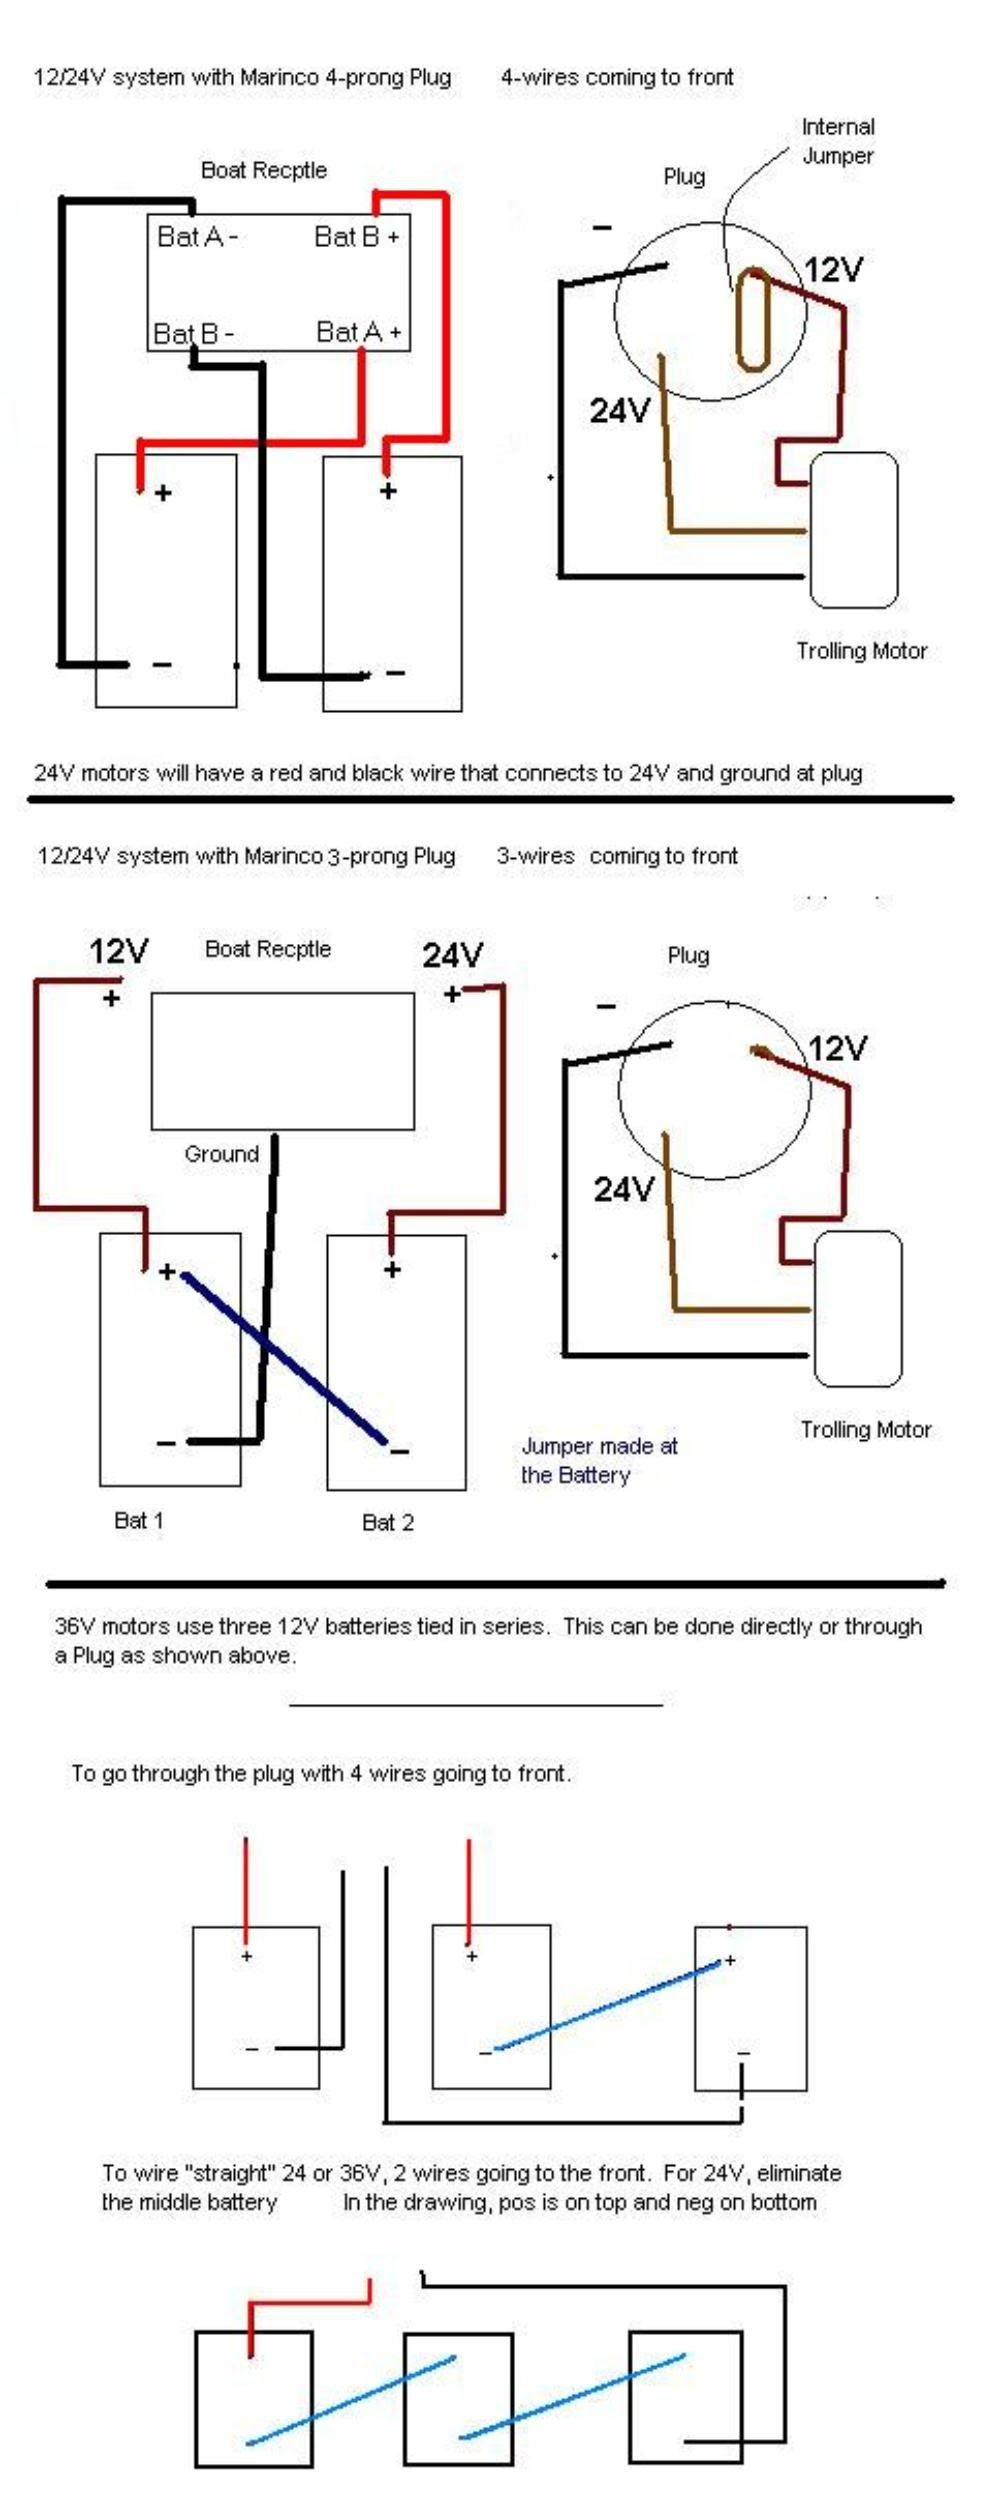 12 24 Volt Trolling Motor Wiring Diagram Ford 1 Wire Alternator Diagram Begeboy Wiring Diagram Source